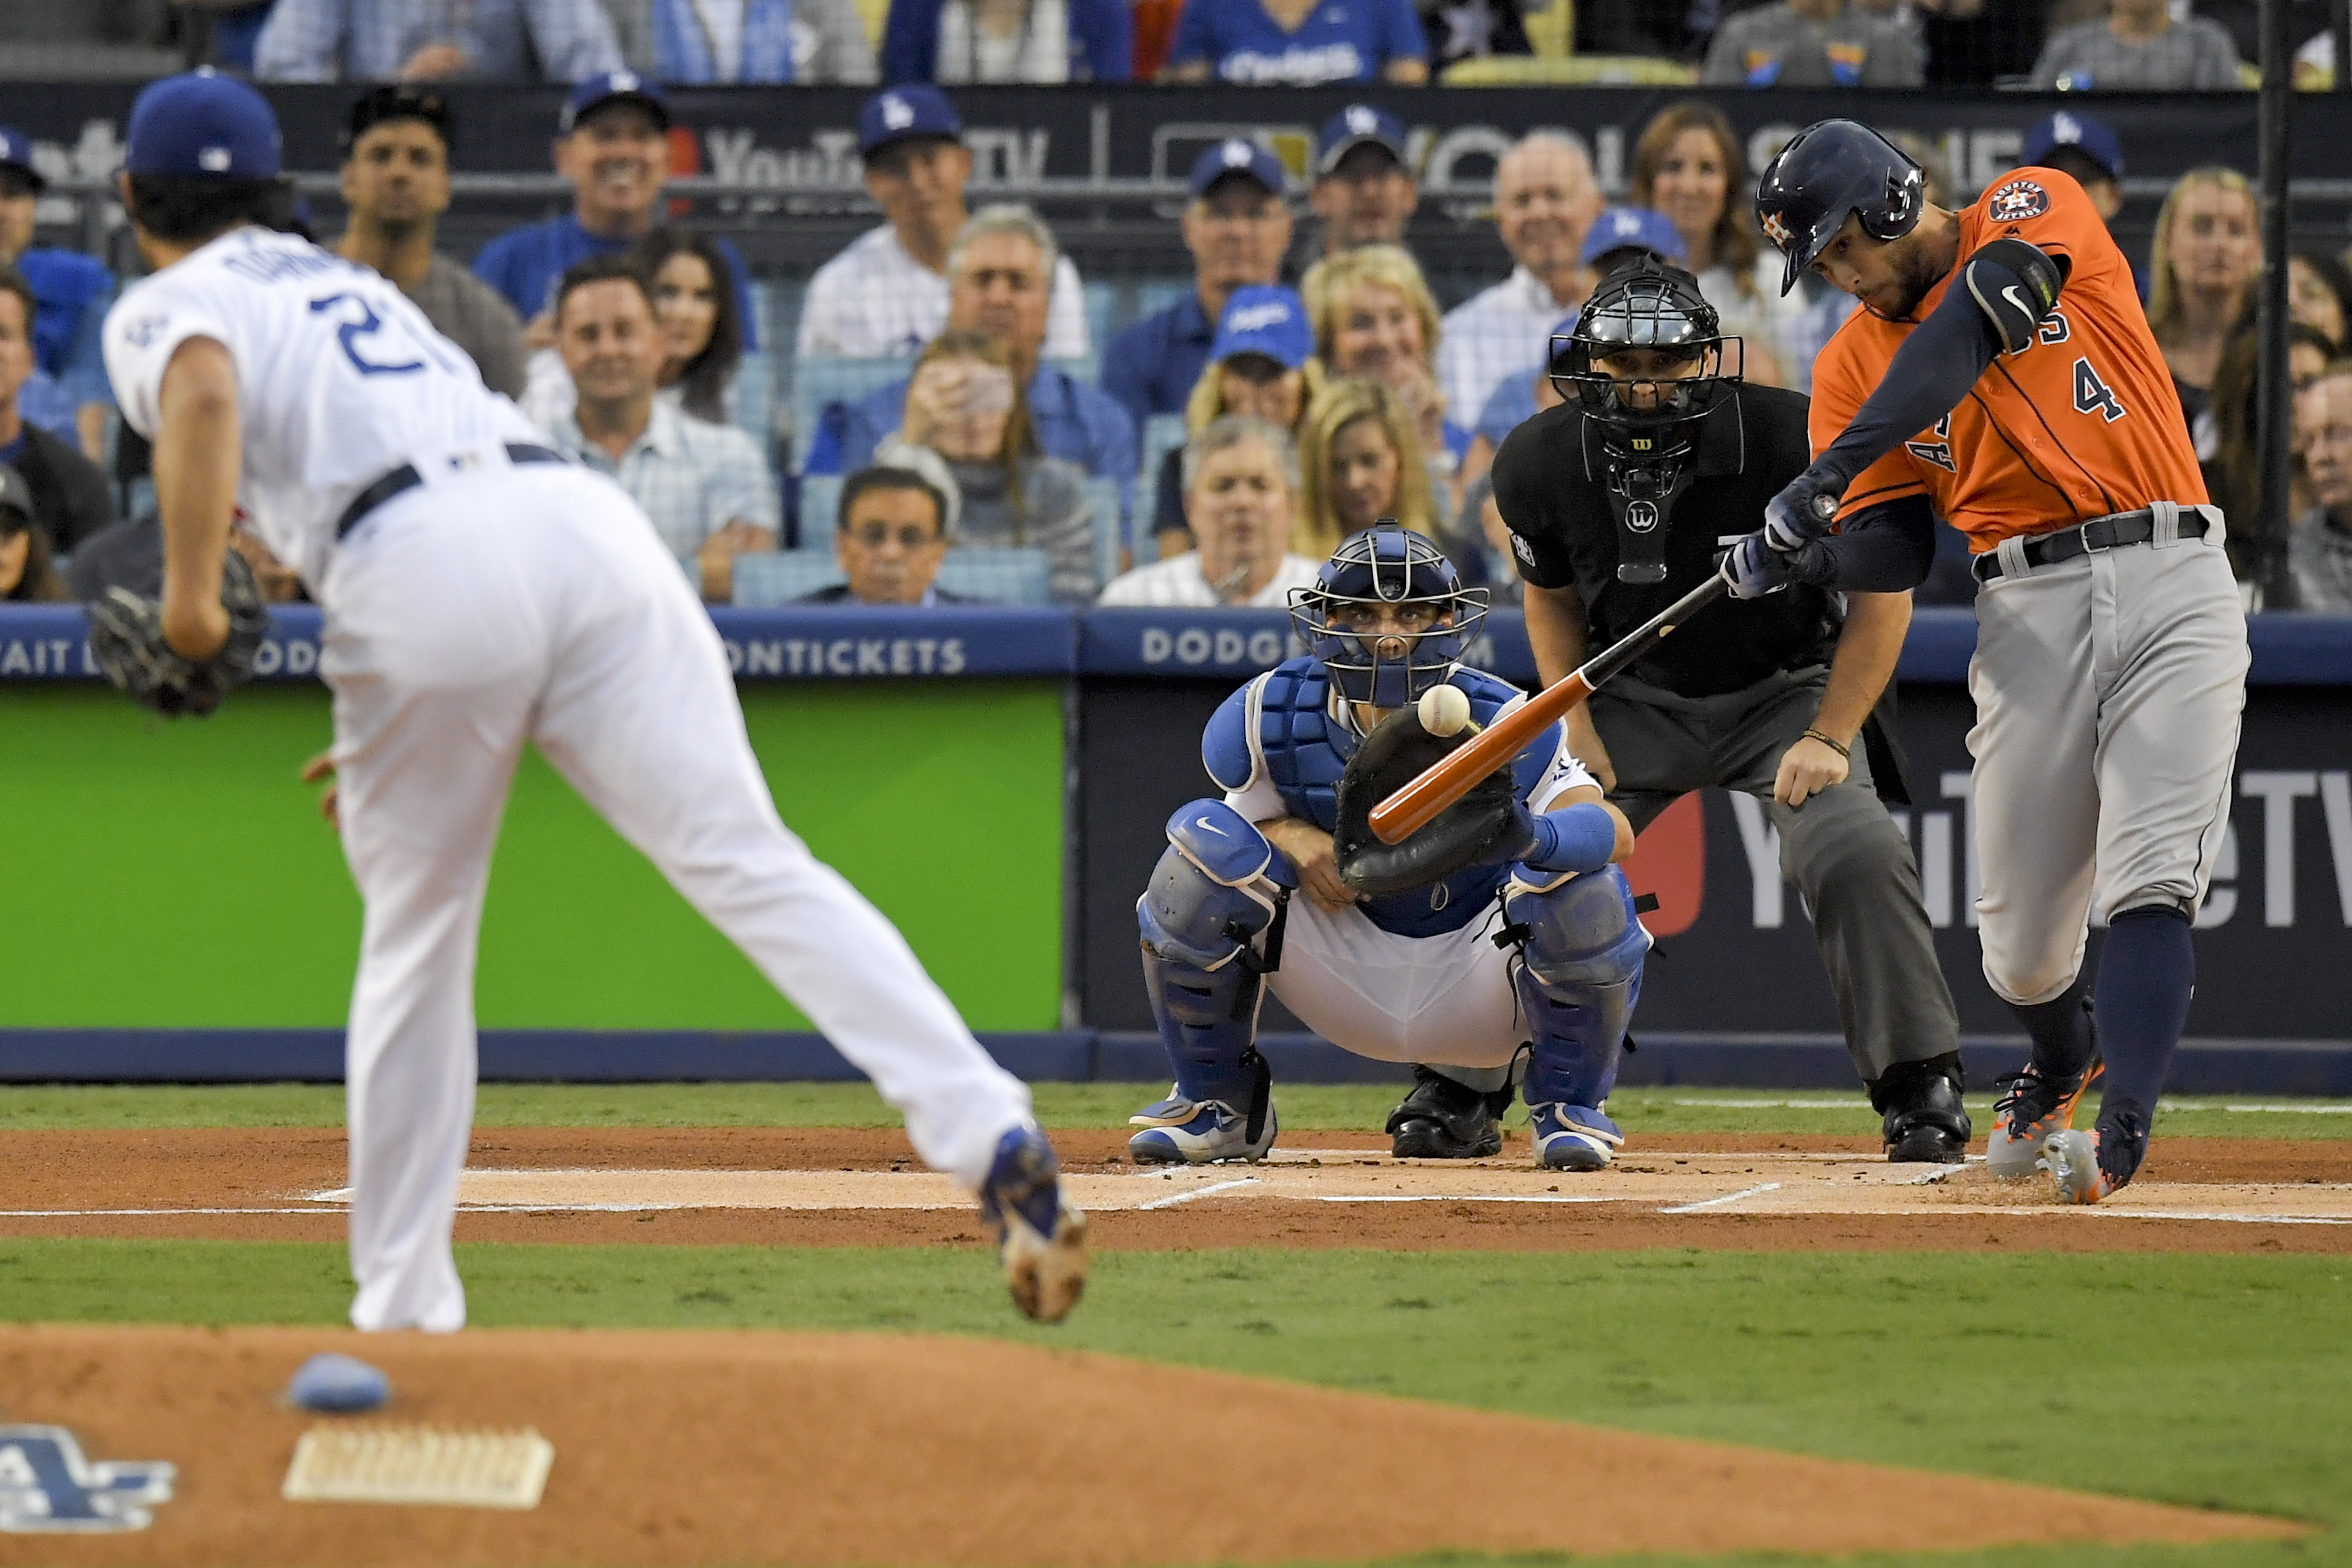 <div class='meta'><div class='origin-logo' data-origin='AP'></div><span class='caption-text' data-credit='AP'>Houston Astros' George Springer, right, hits a double off Los Angeles Dodgers starting pitcher Yu Darvish, of Japan, during the first inning of Game 7. (AP Photo/Mark J. Terrill)</span></div>